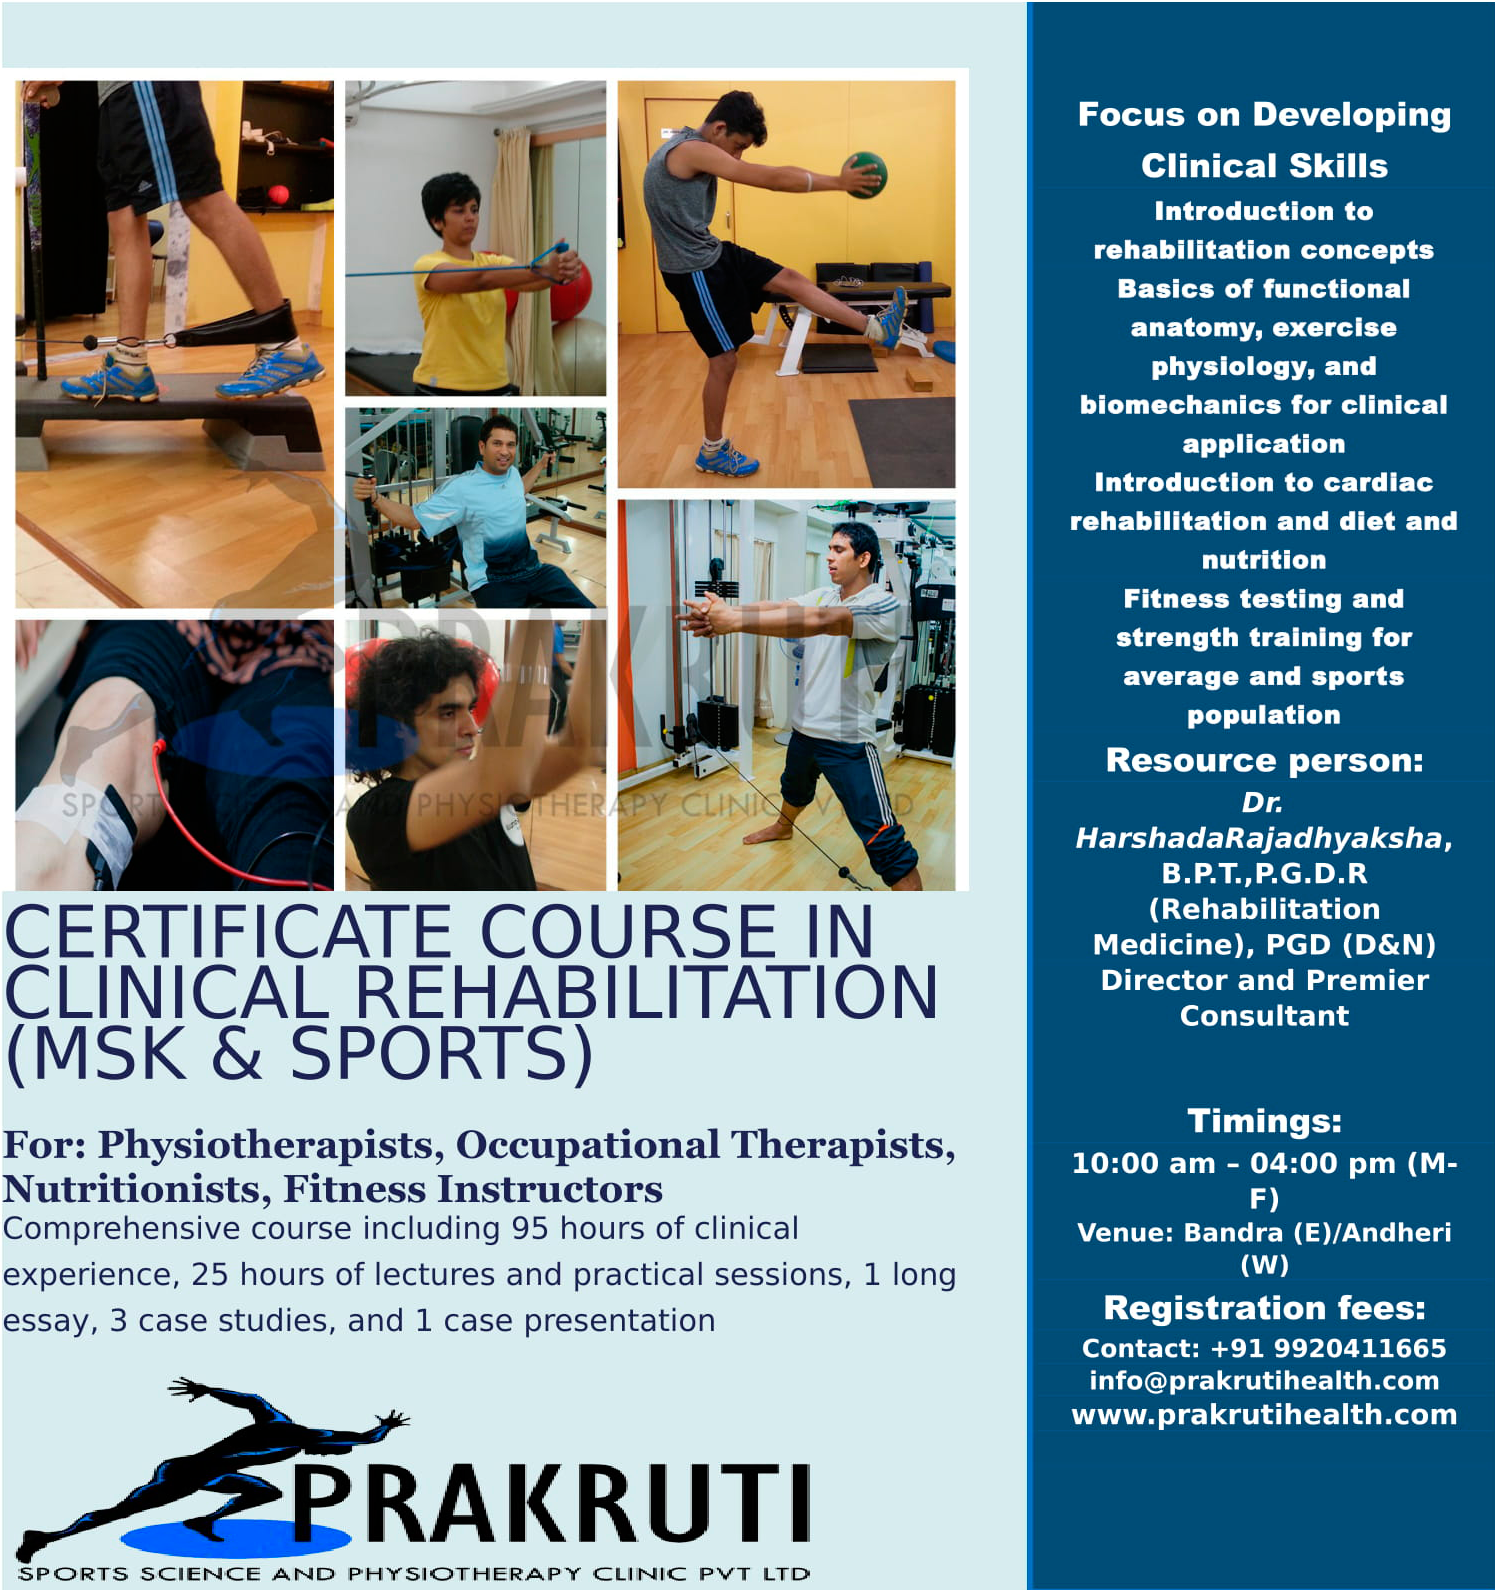 Clinical Rehabilitation (MSK & SPORTS)